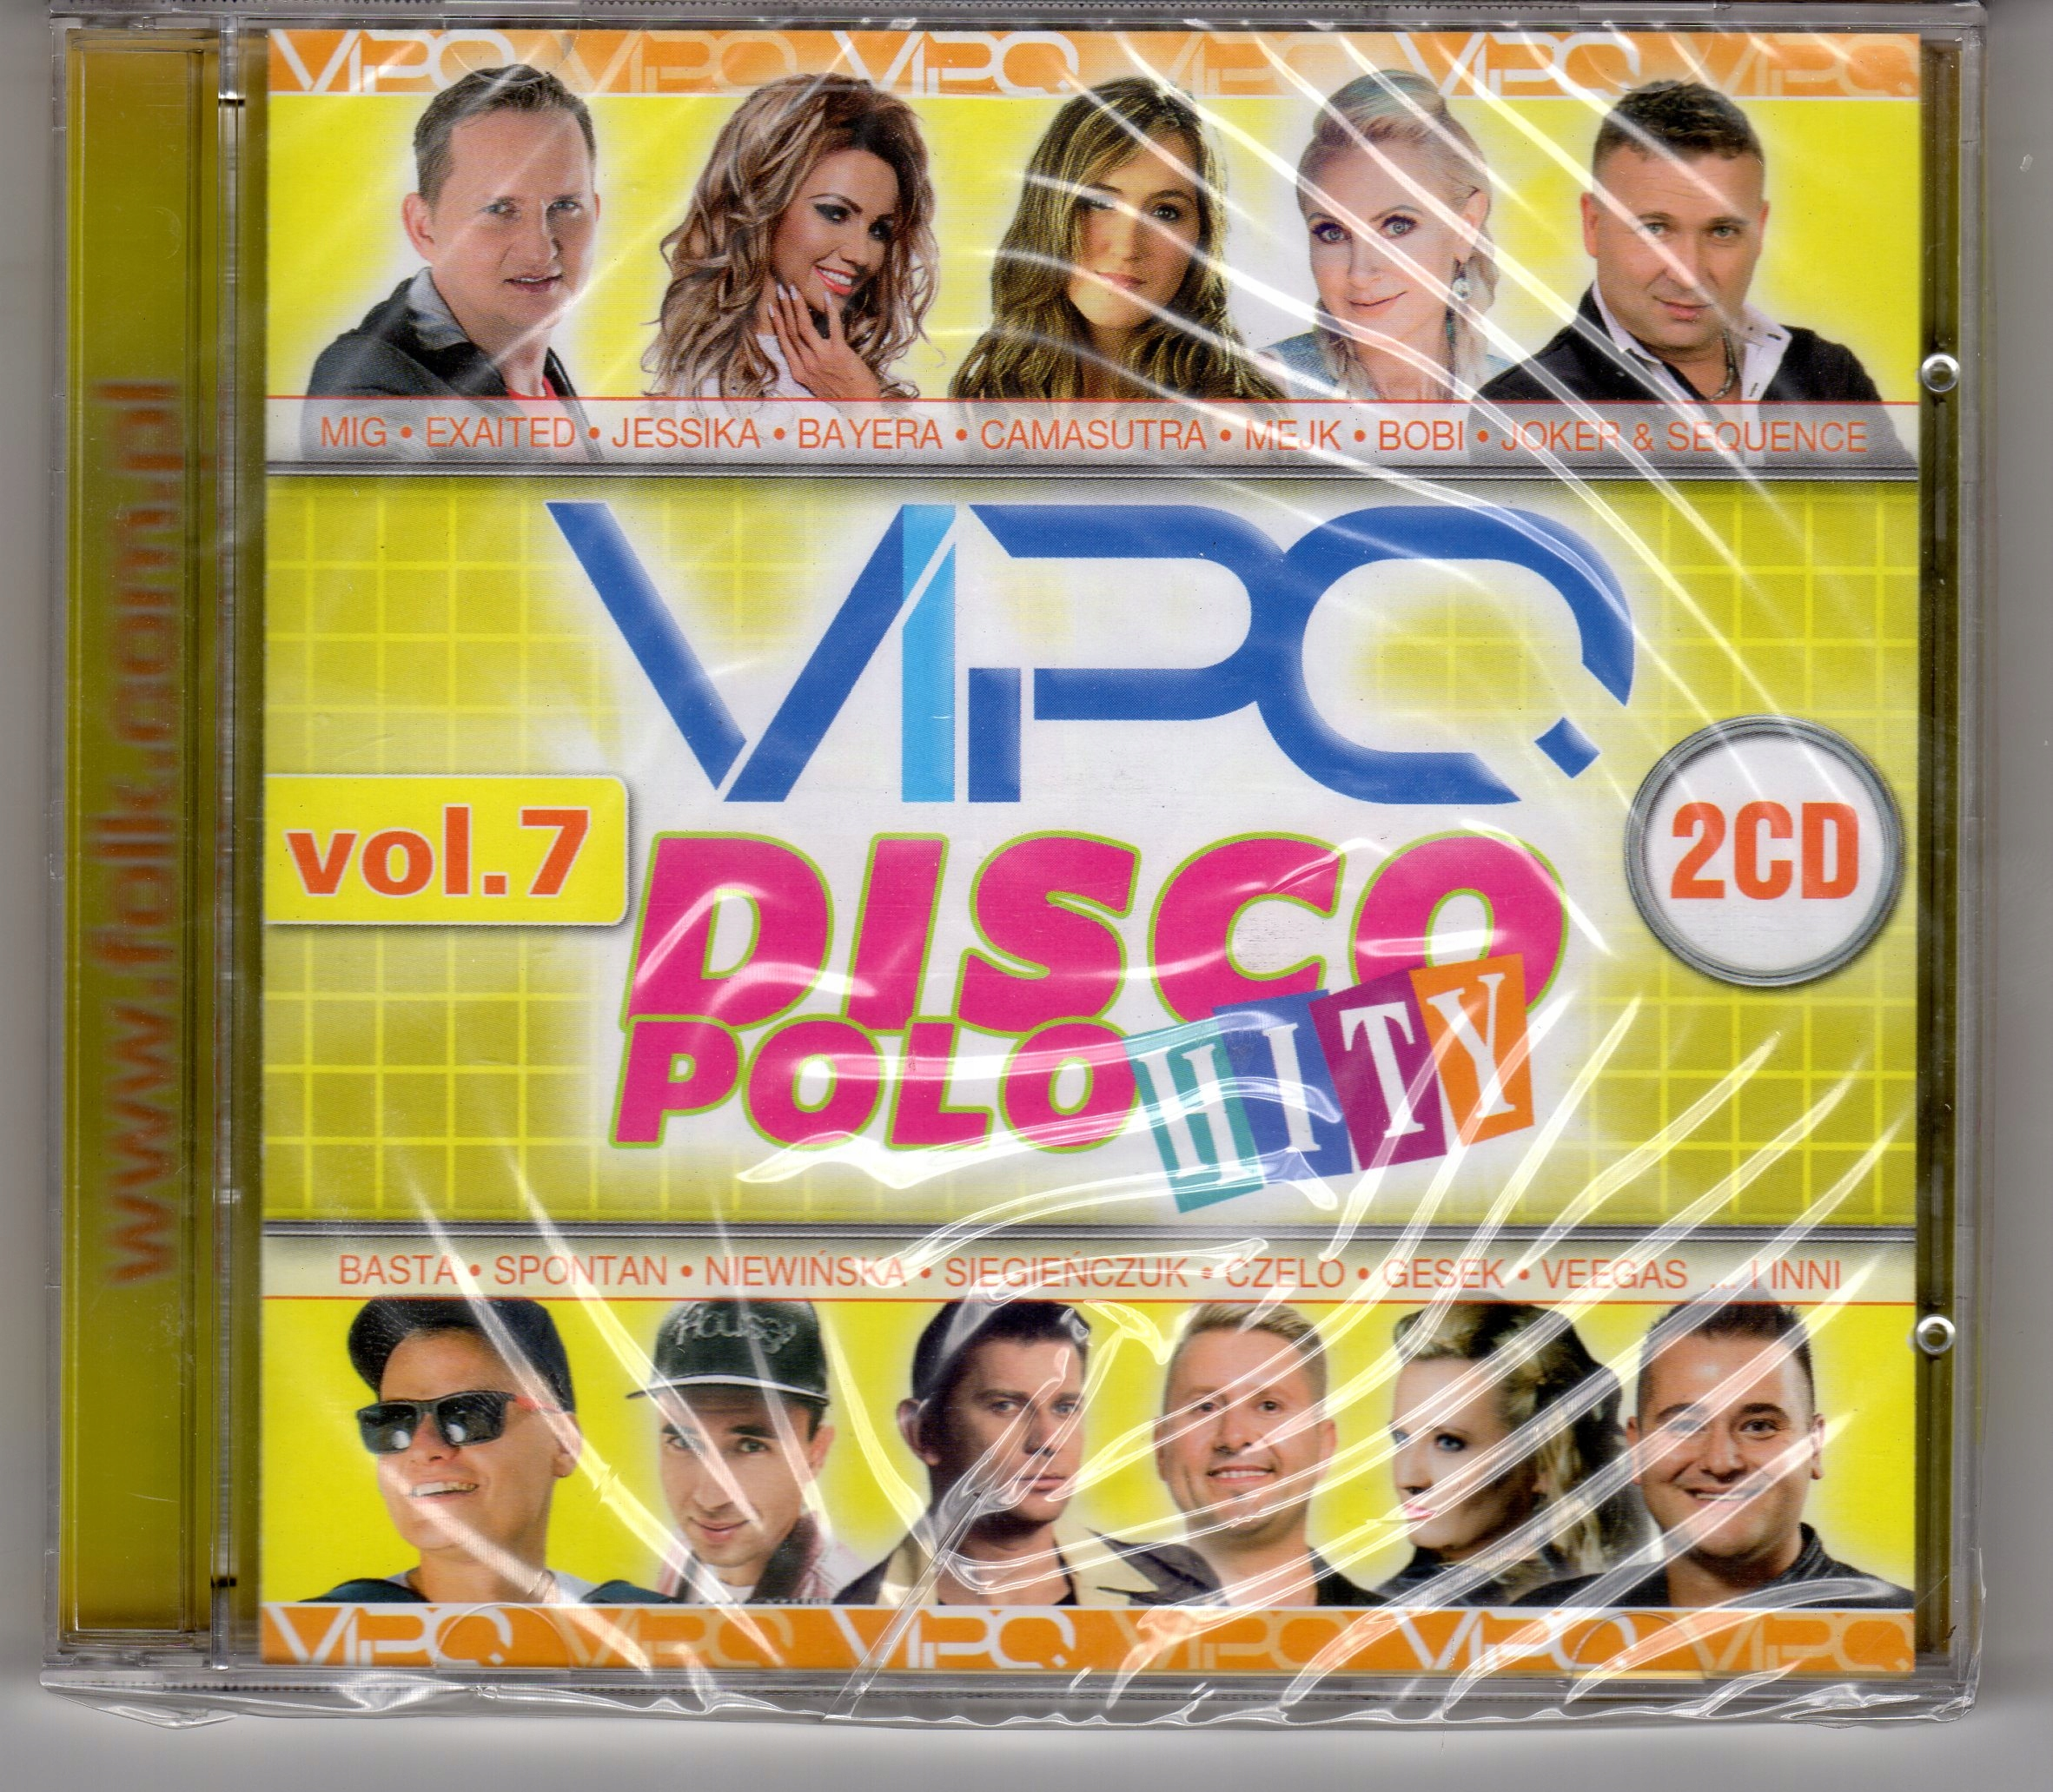 VIPO DISCO POLO HITY VOL. 7 2CD